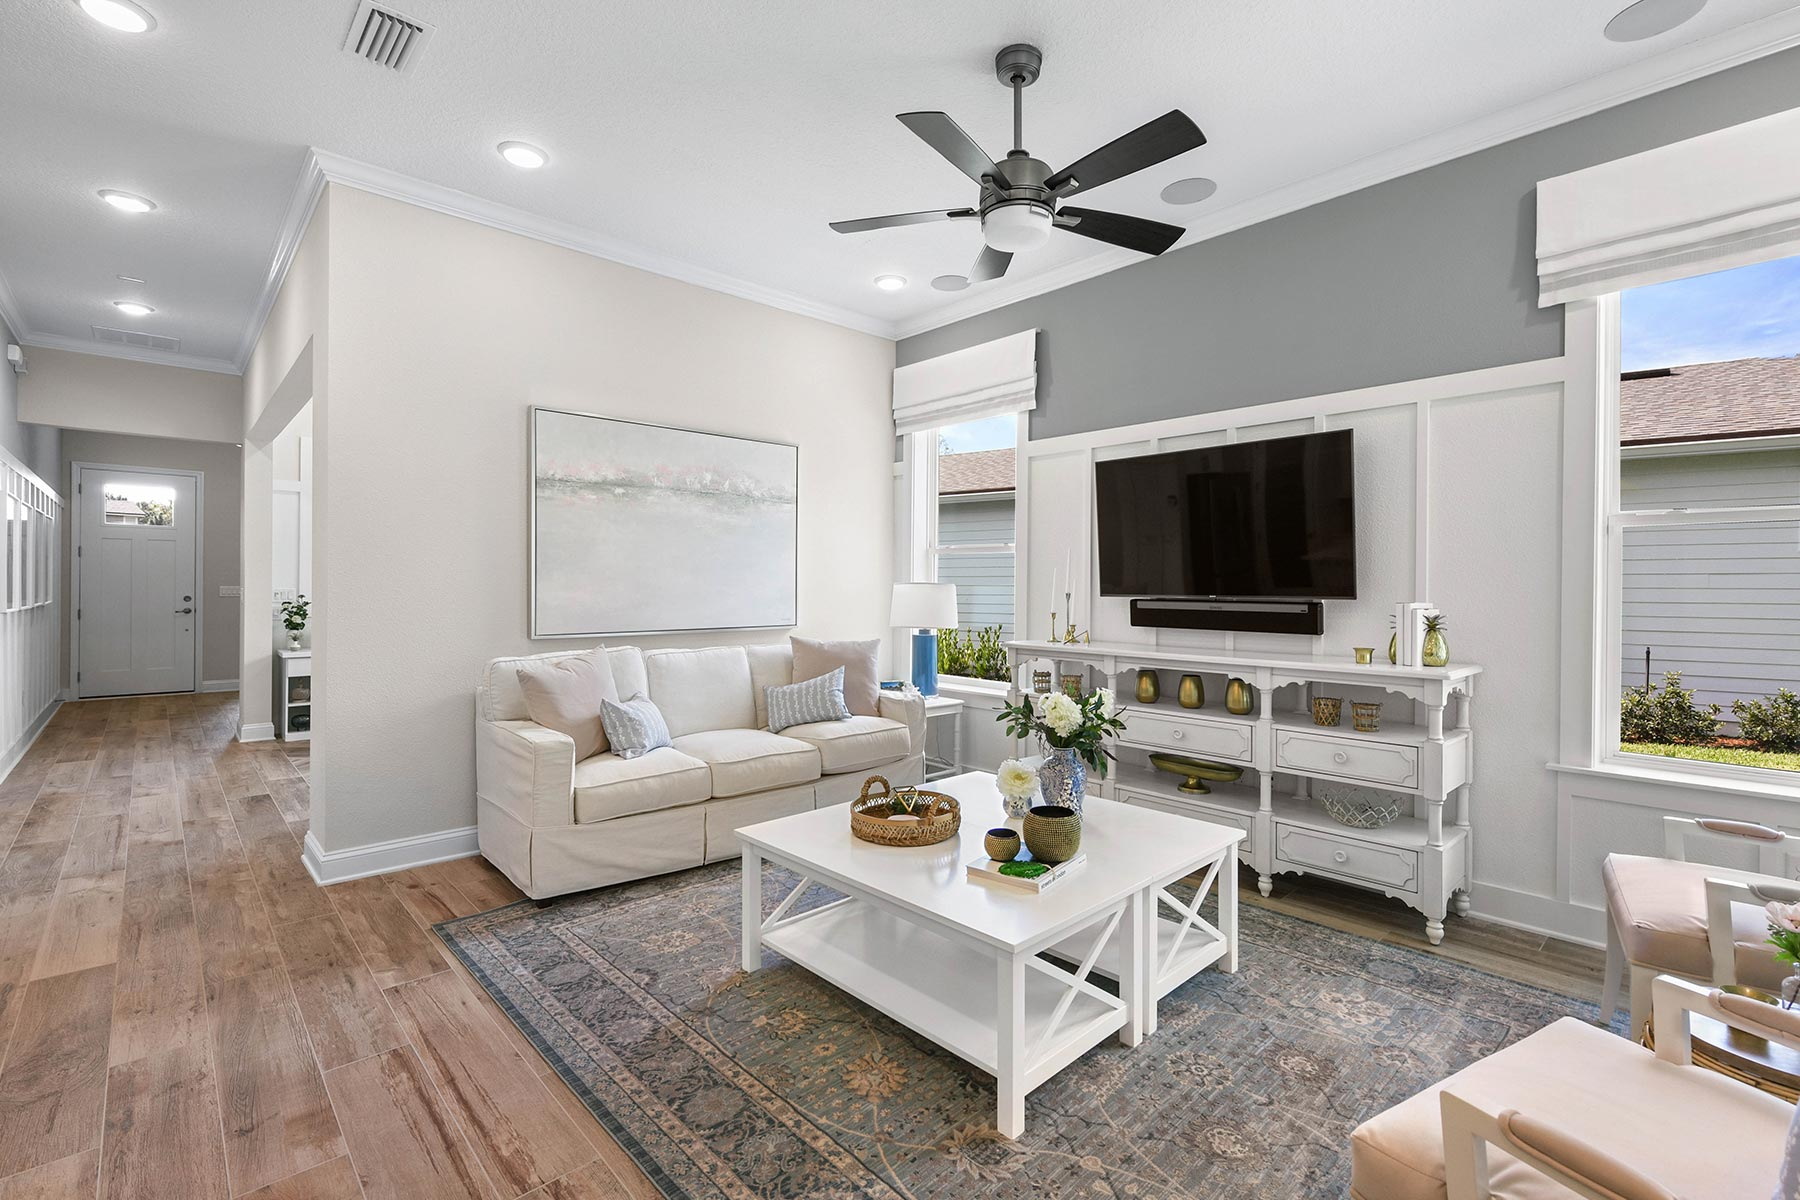 Court Plan Greatroom at RiverTown - WaterSong in St. Johns Florida by Mattamy Homes